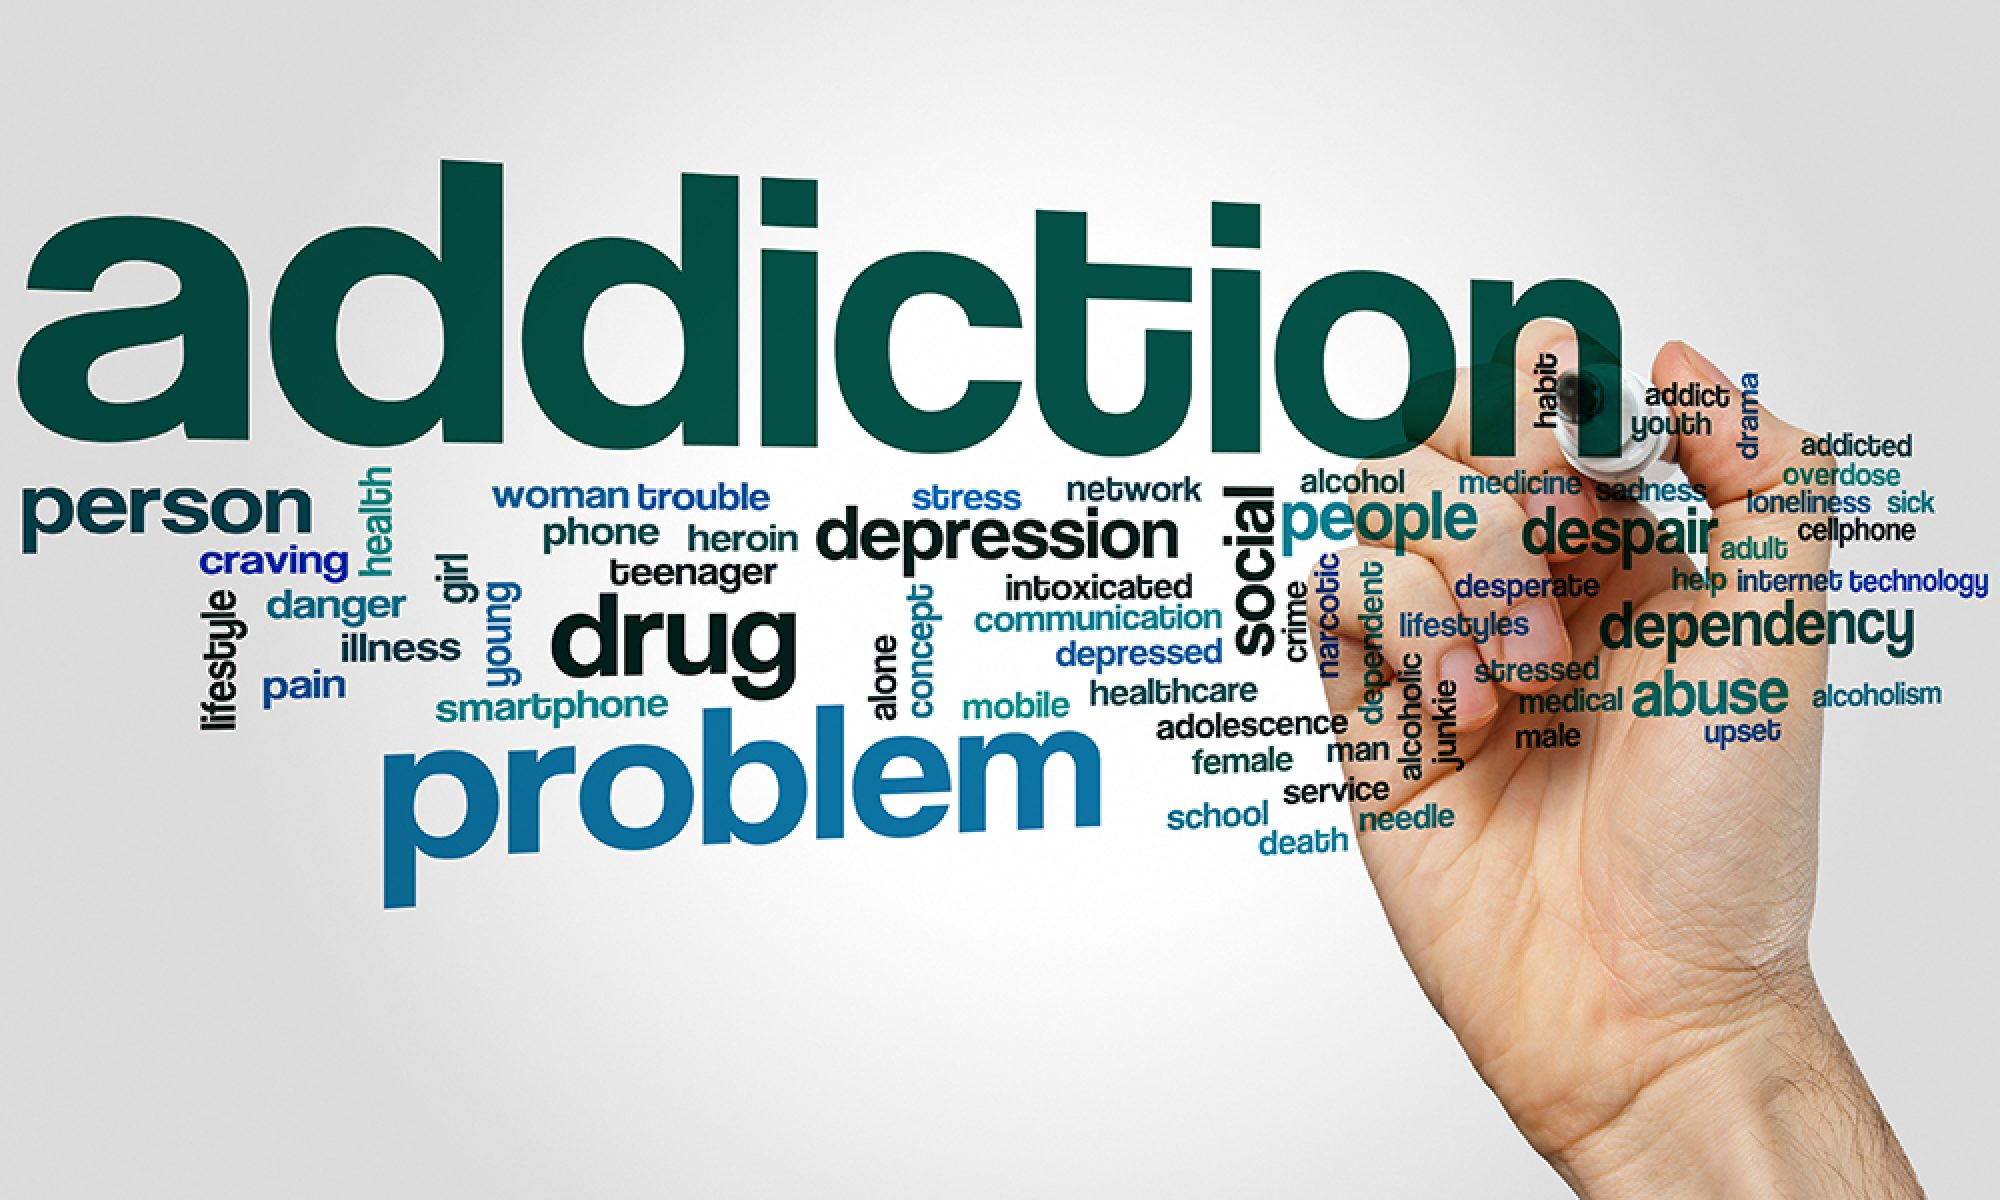 Addictology: Psychology and Psychotherapy of Addictions